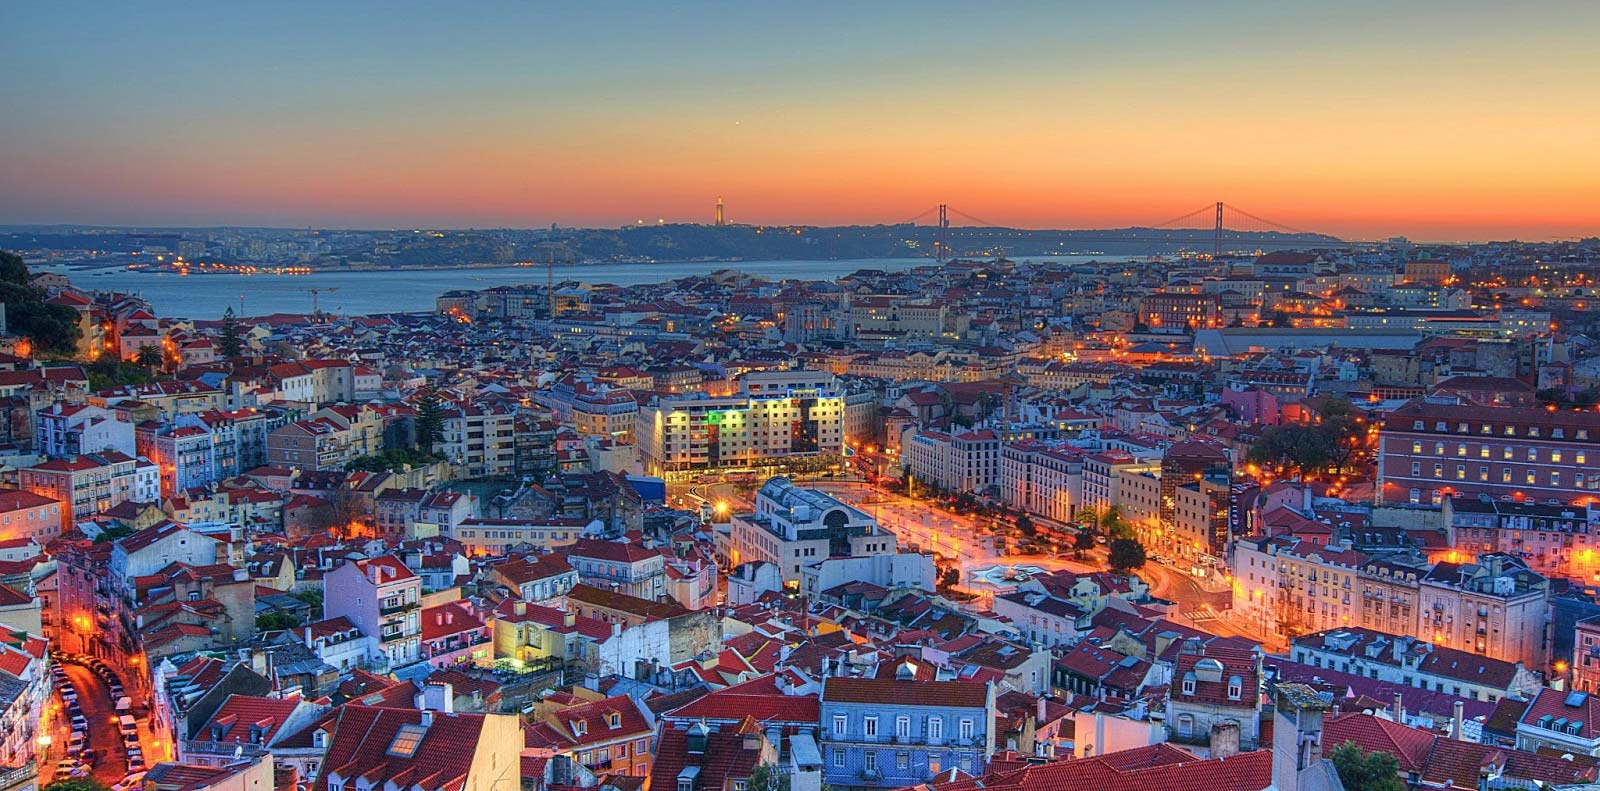 9 reasons why Lisbon should be your next cruise destination